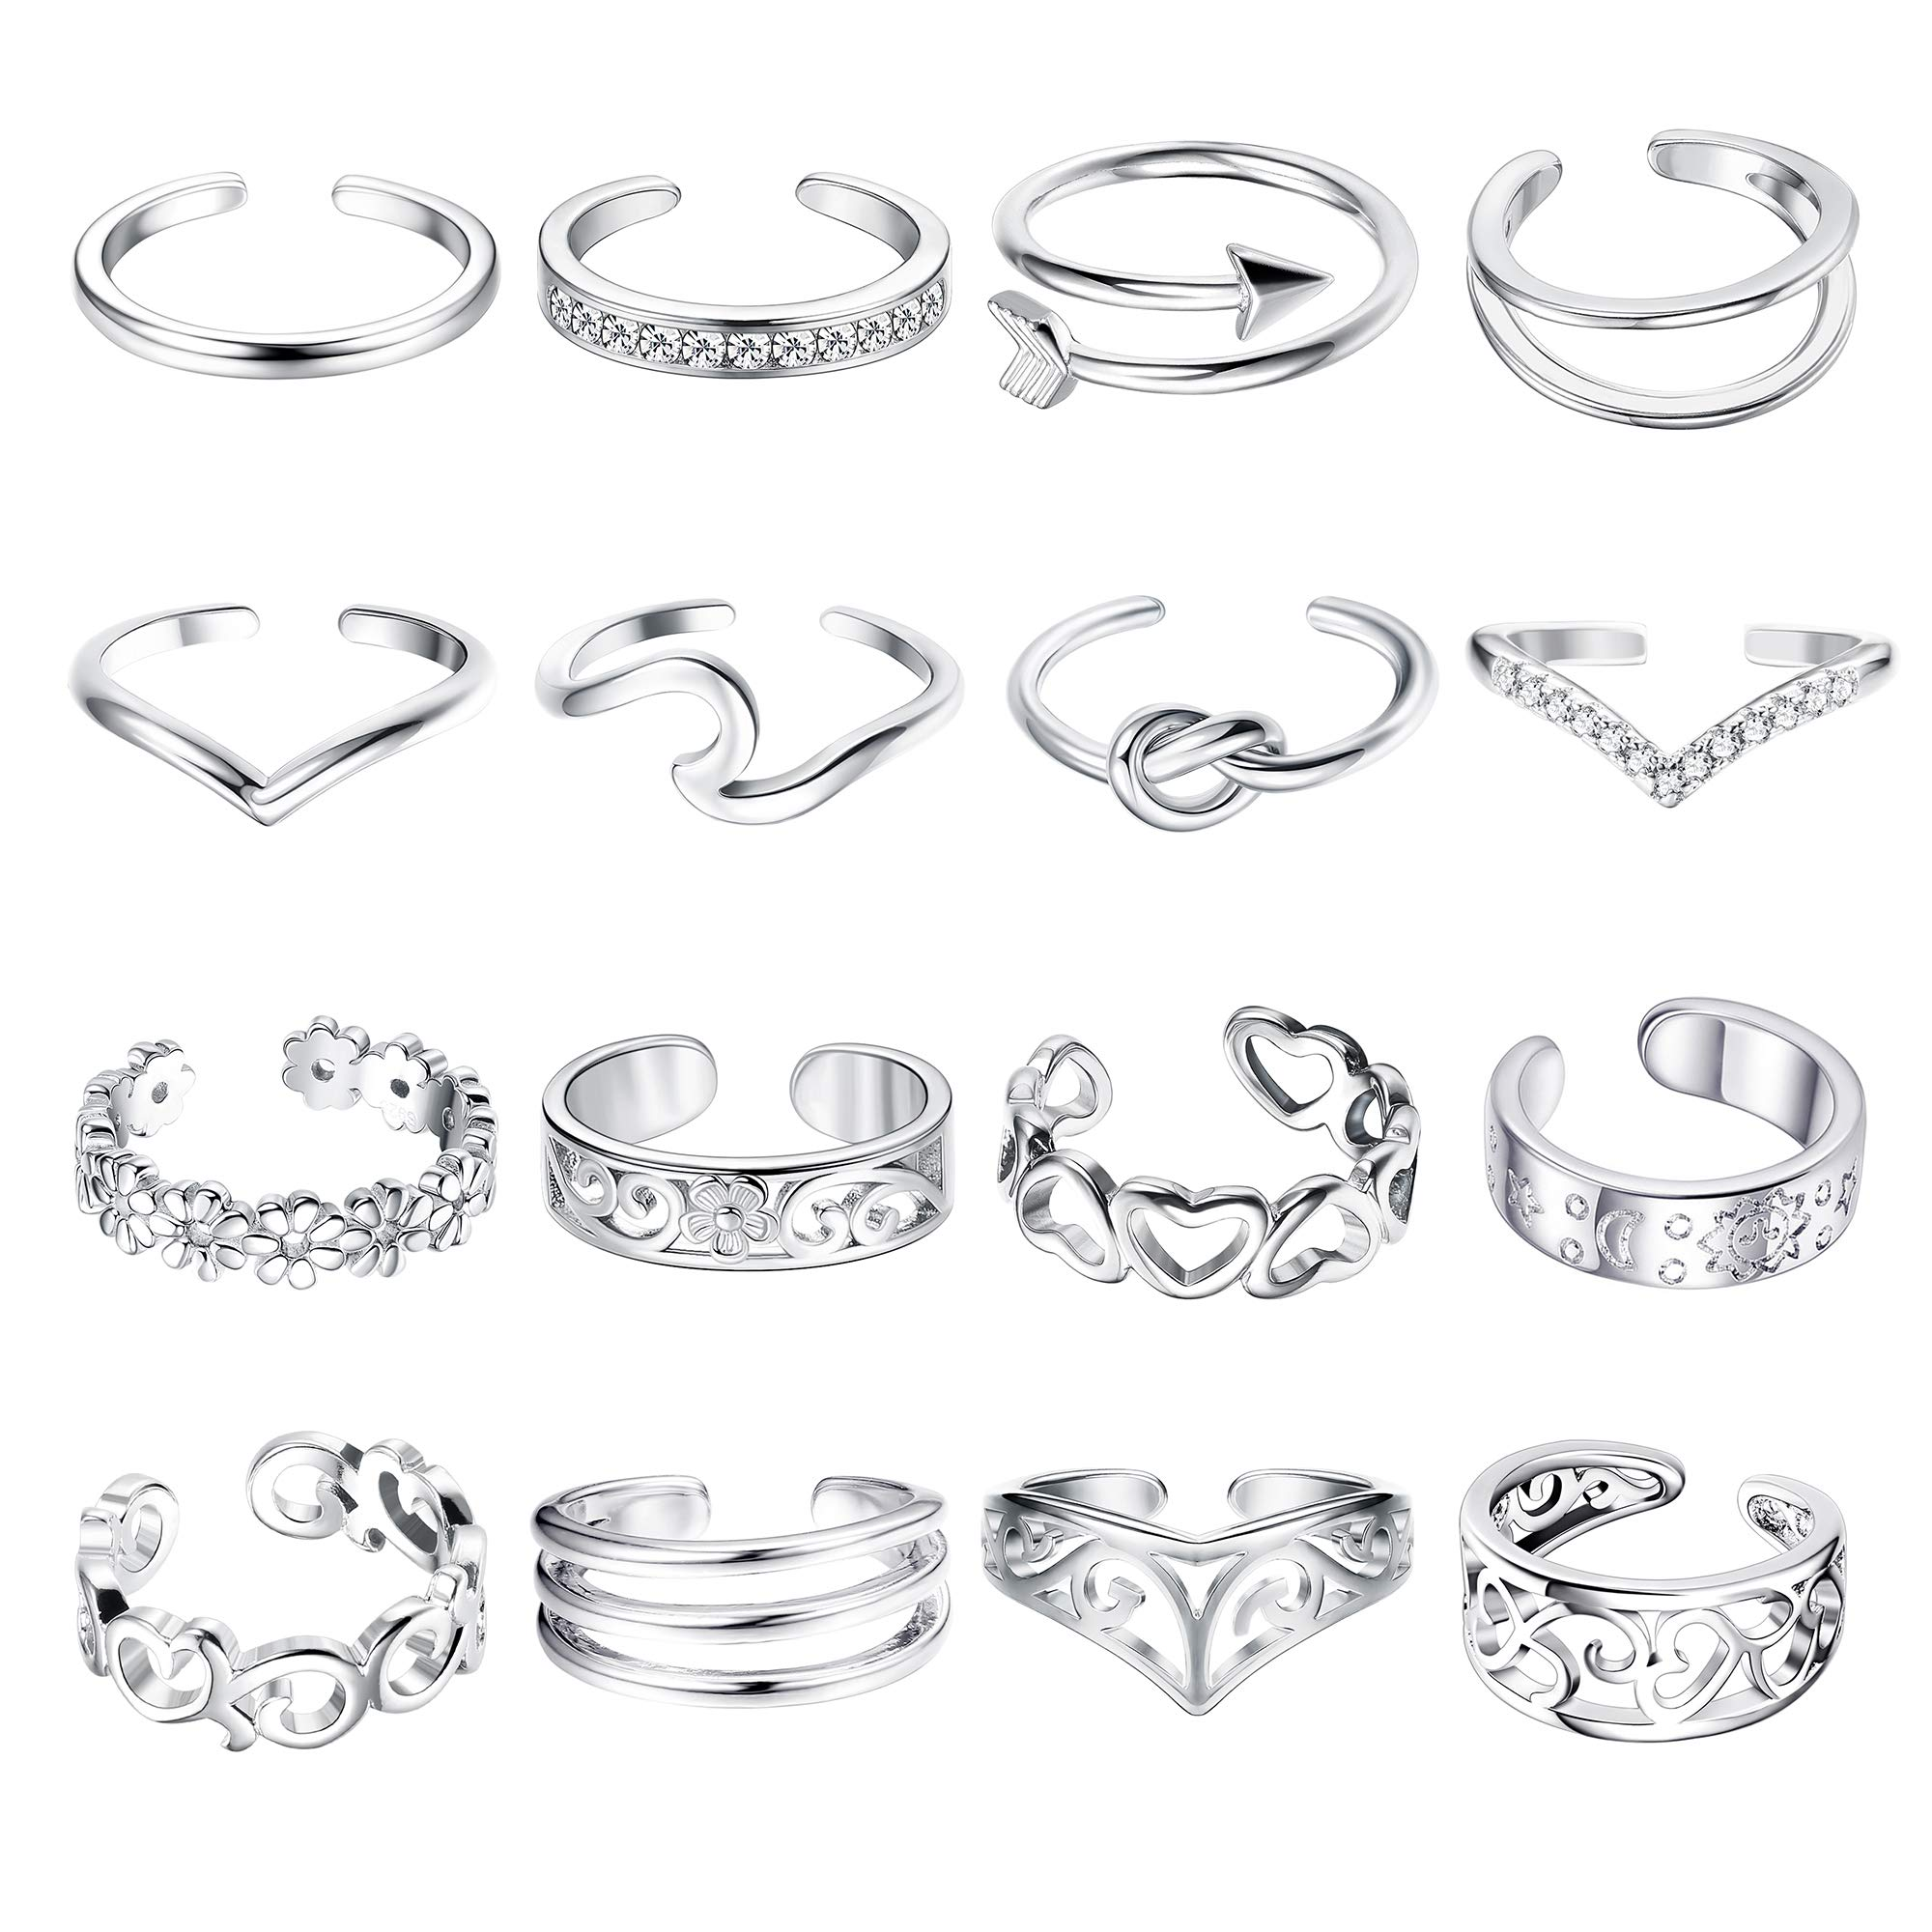 FUNRUN JEWELRY 16PCS Adjustable Toe Ring for Women Girls Flower Knot Arrow Wave Ring Band Open Tail Finger Ring (Platinum Plated) by FUNRUN JEWELRY